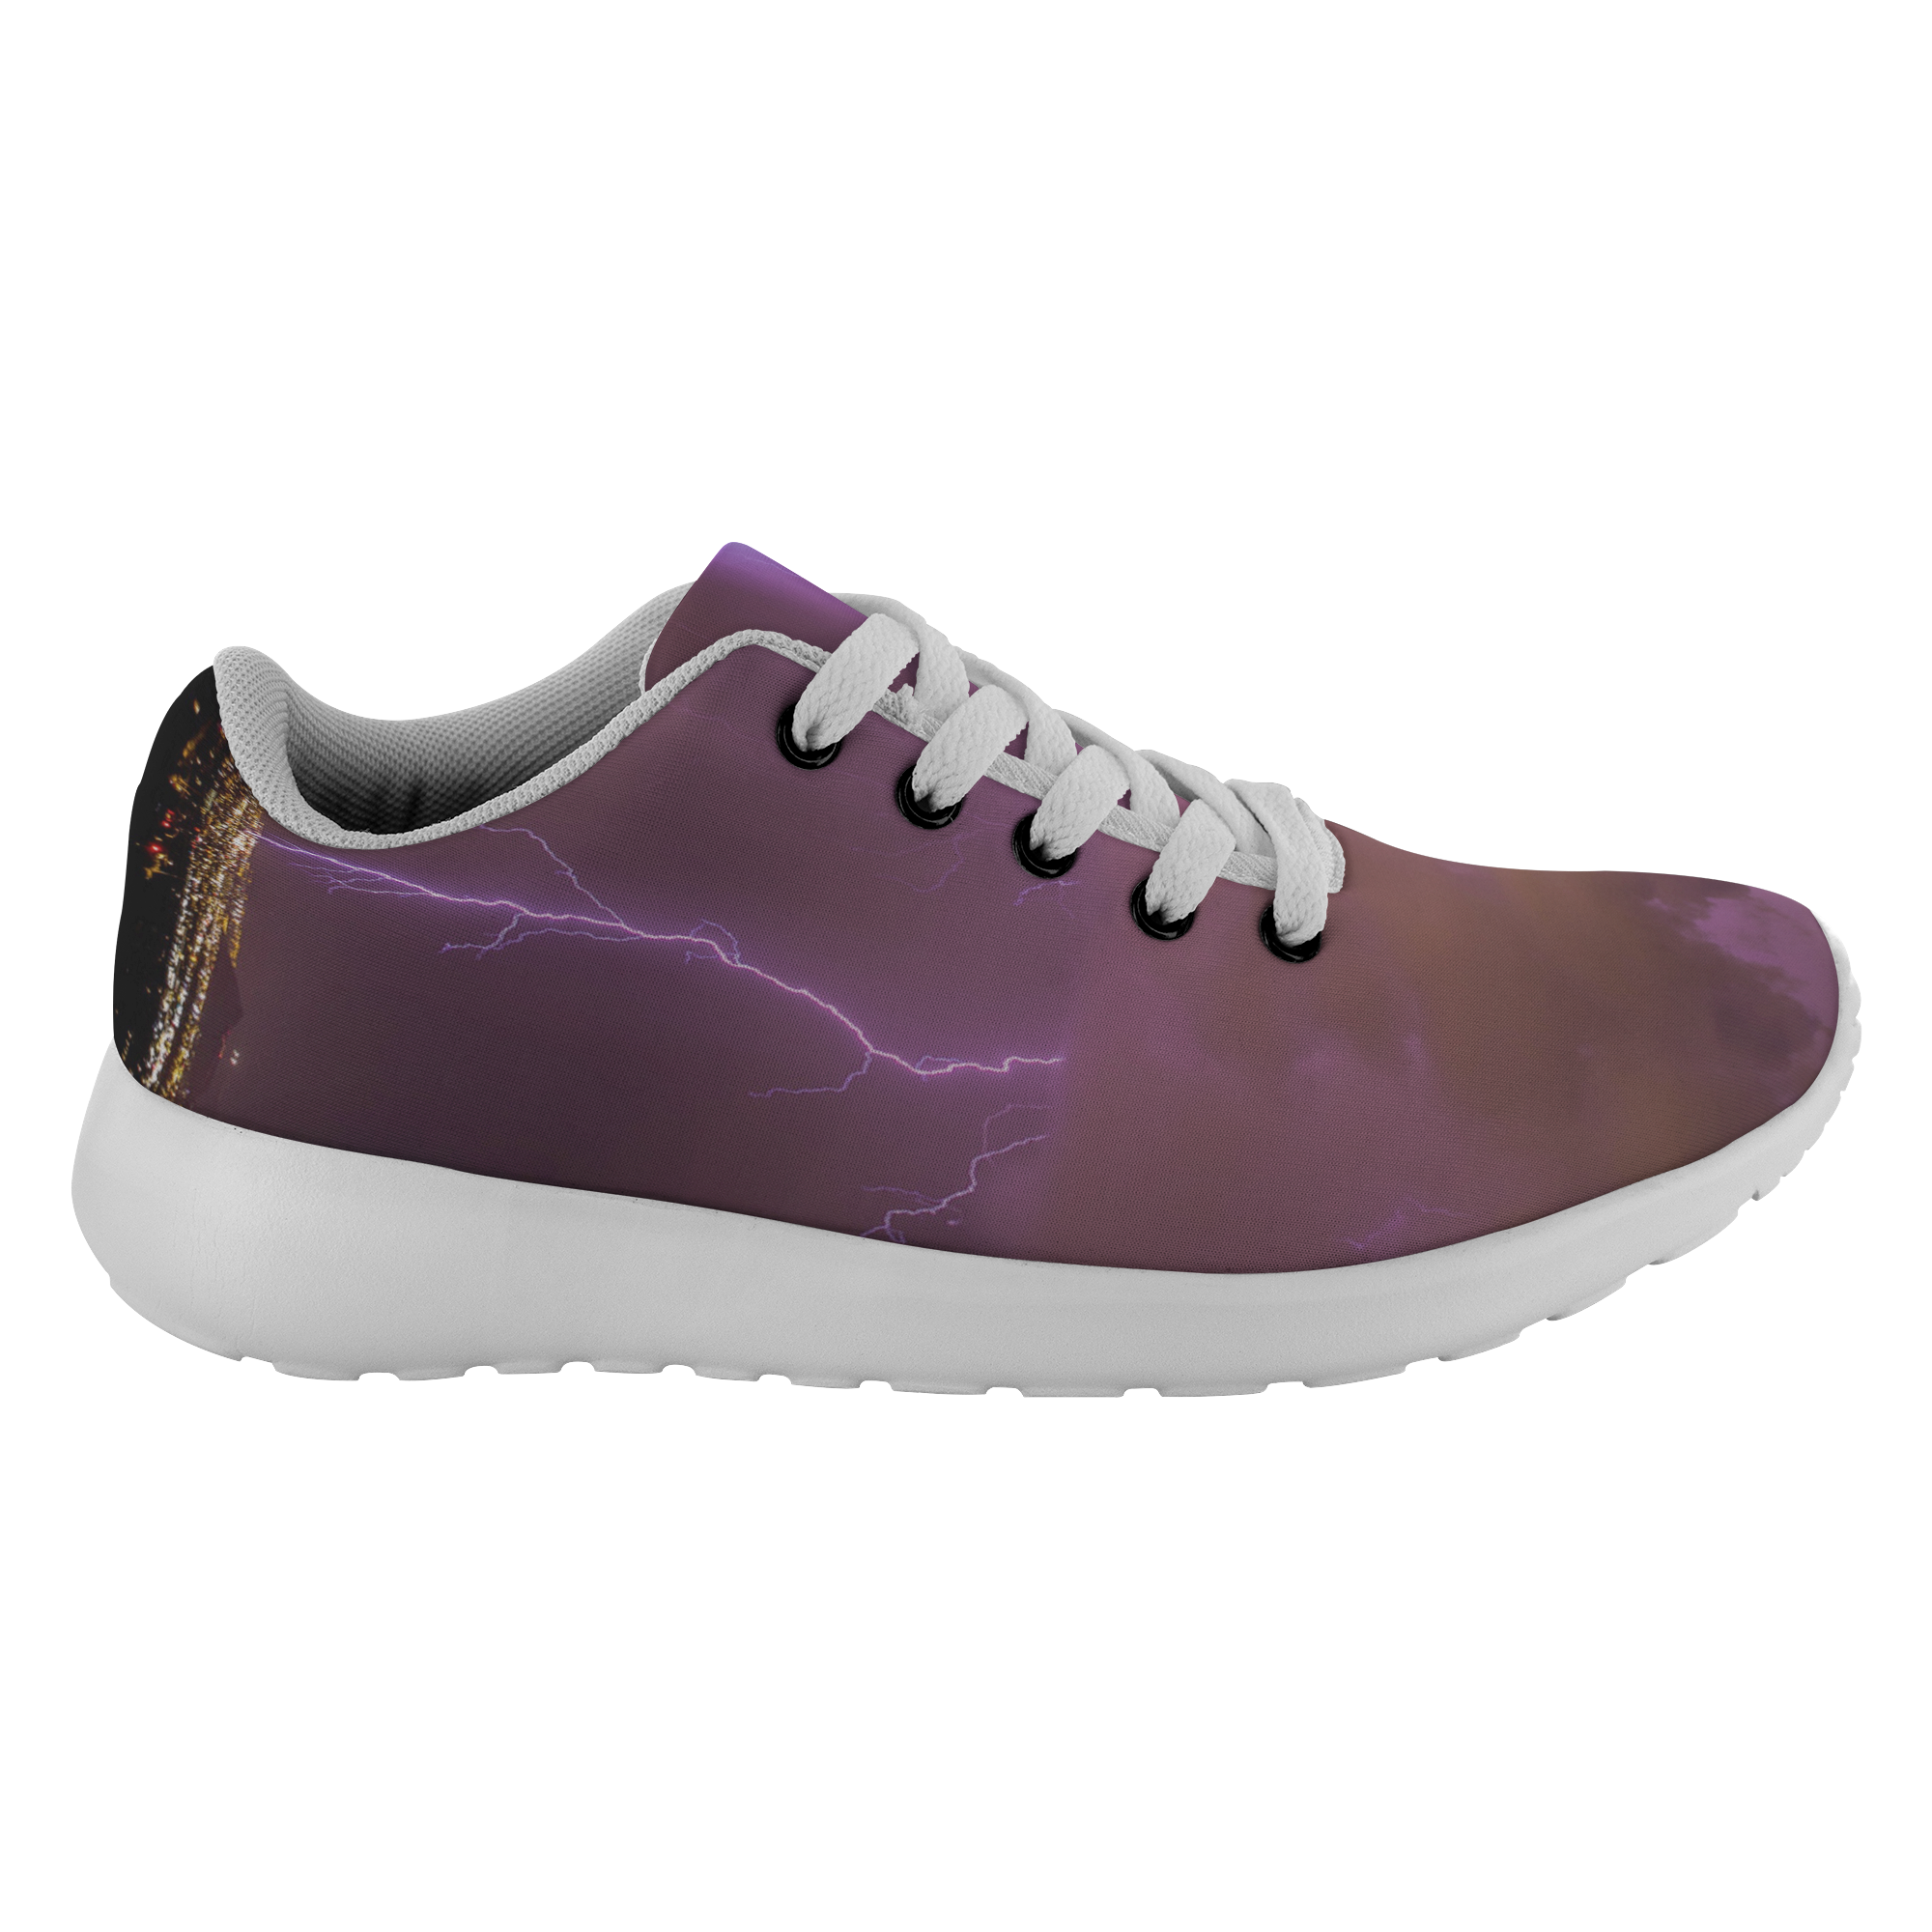 Lightning and sky shoes pod